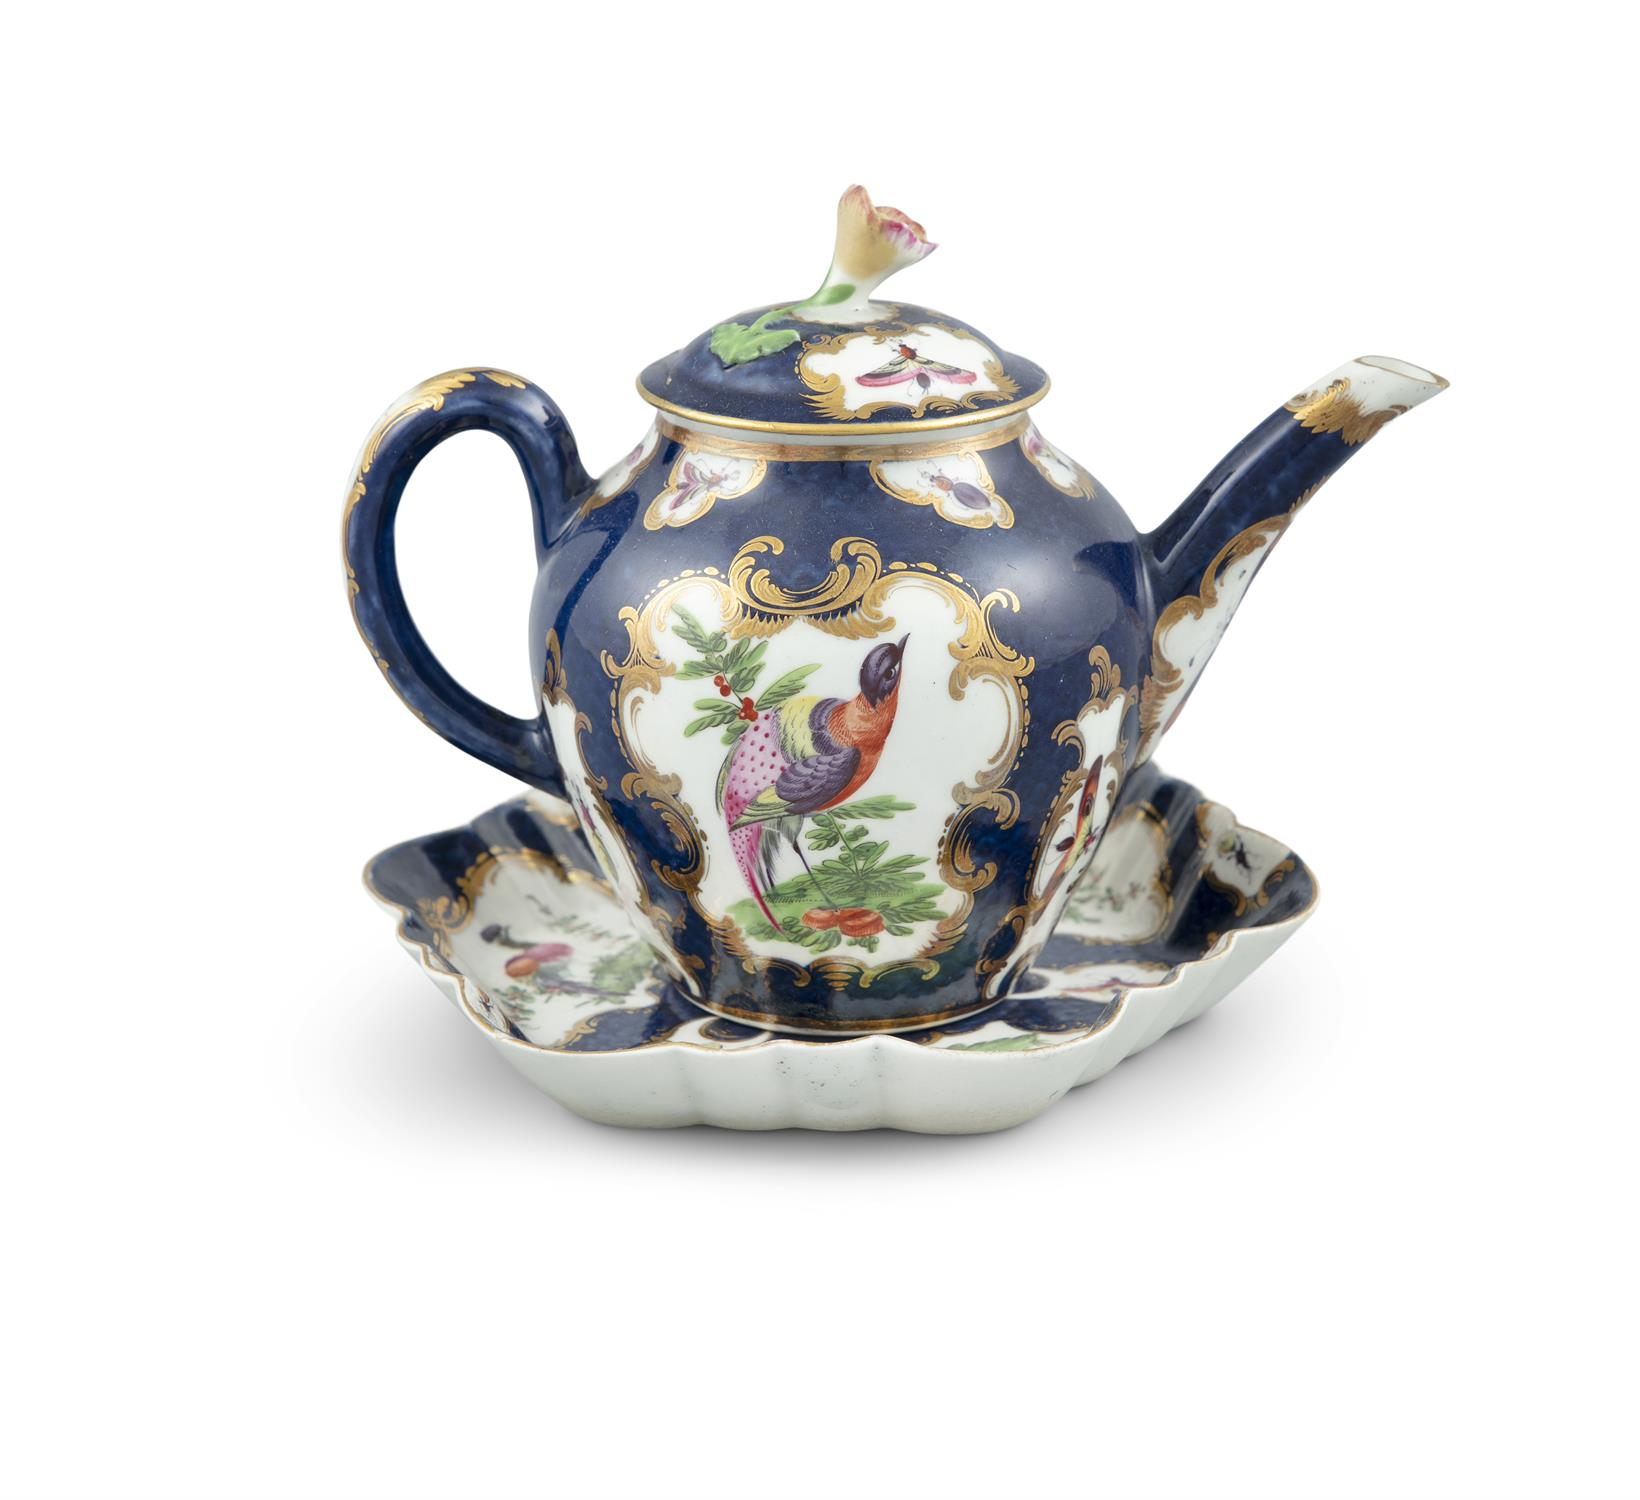 A WORCESTER PORCELAIN BACHELOR'S TEAPOT AND STAND, the deep blue ground decorated with panels